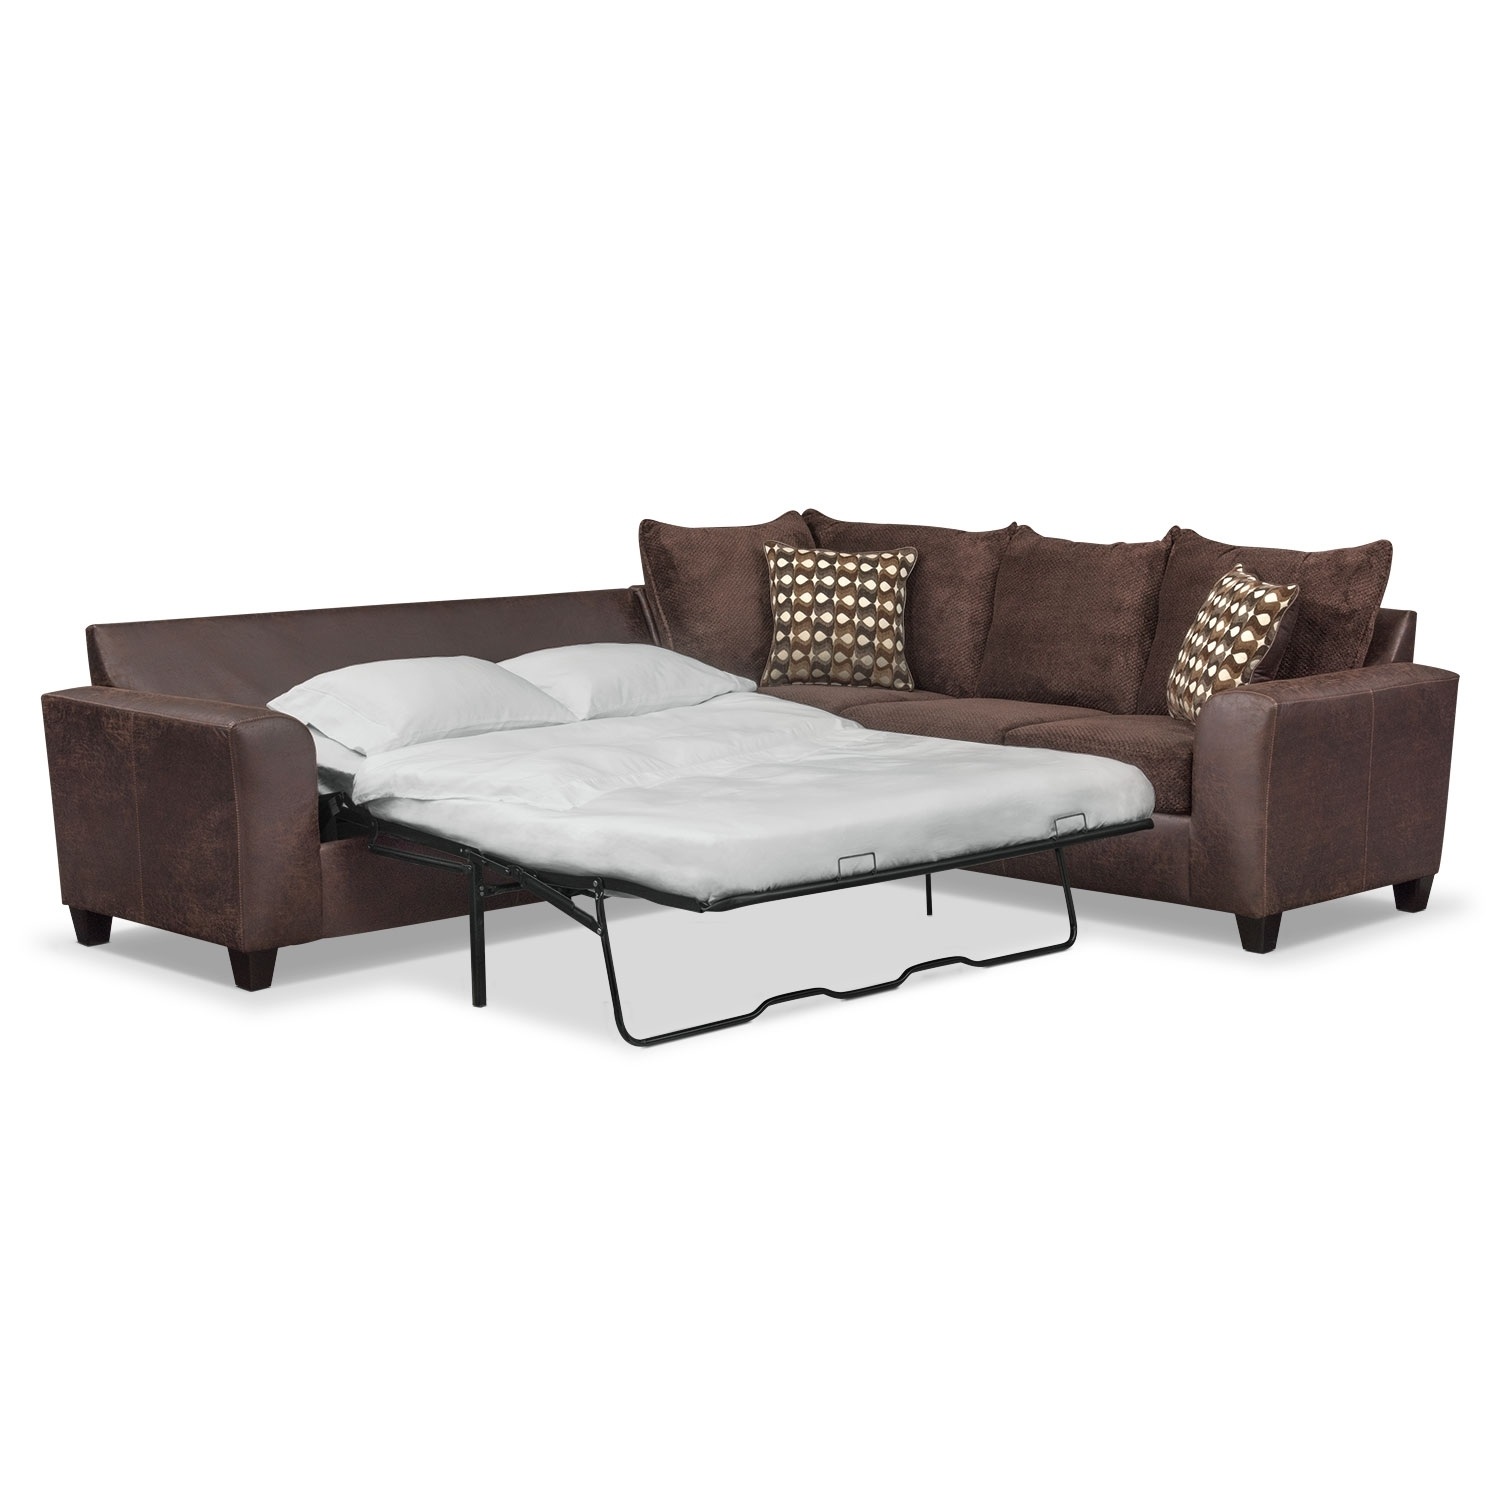 Brando 2 Piece Innerspring Sleeper Sectional – Chocolate | Value With Regard To Aurora 2 Piece Sectionals (View 19 of 25)